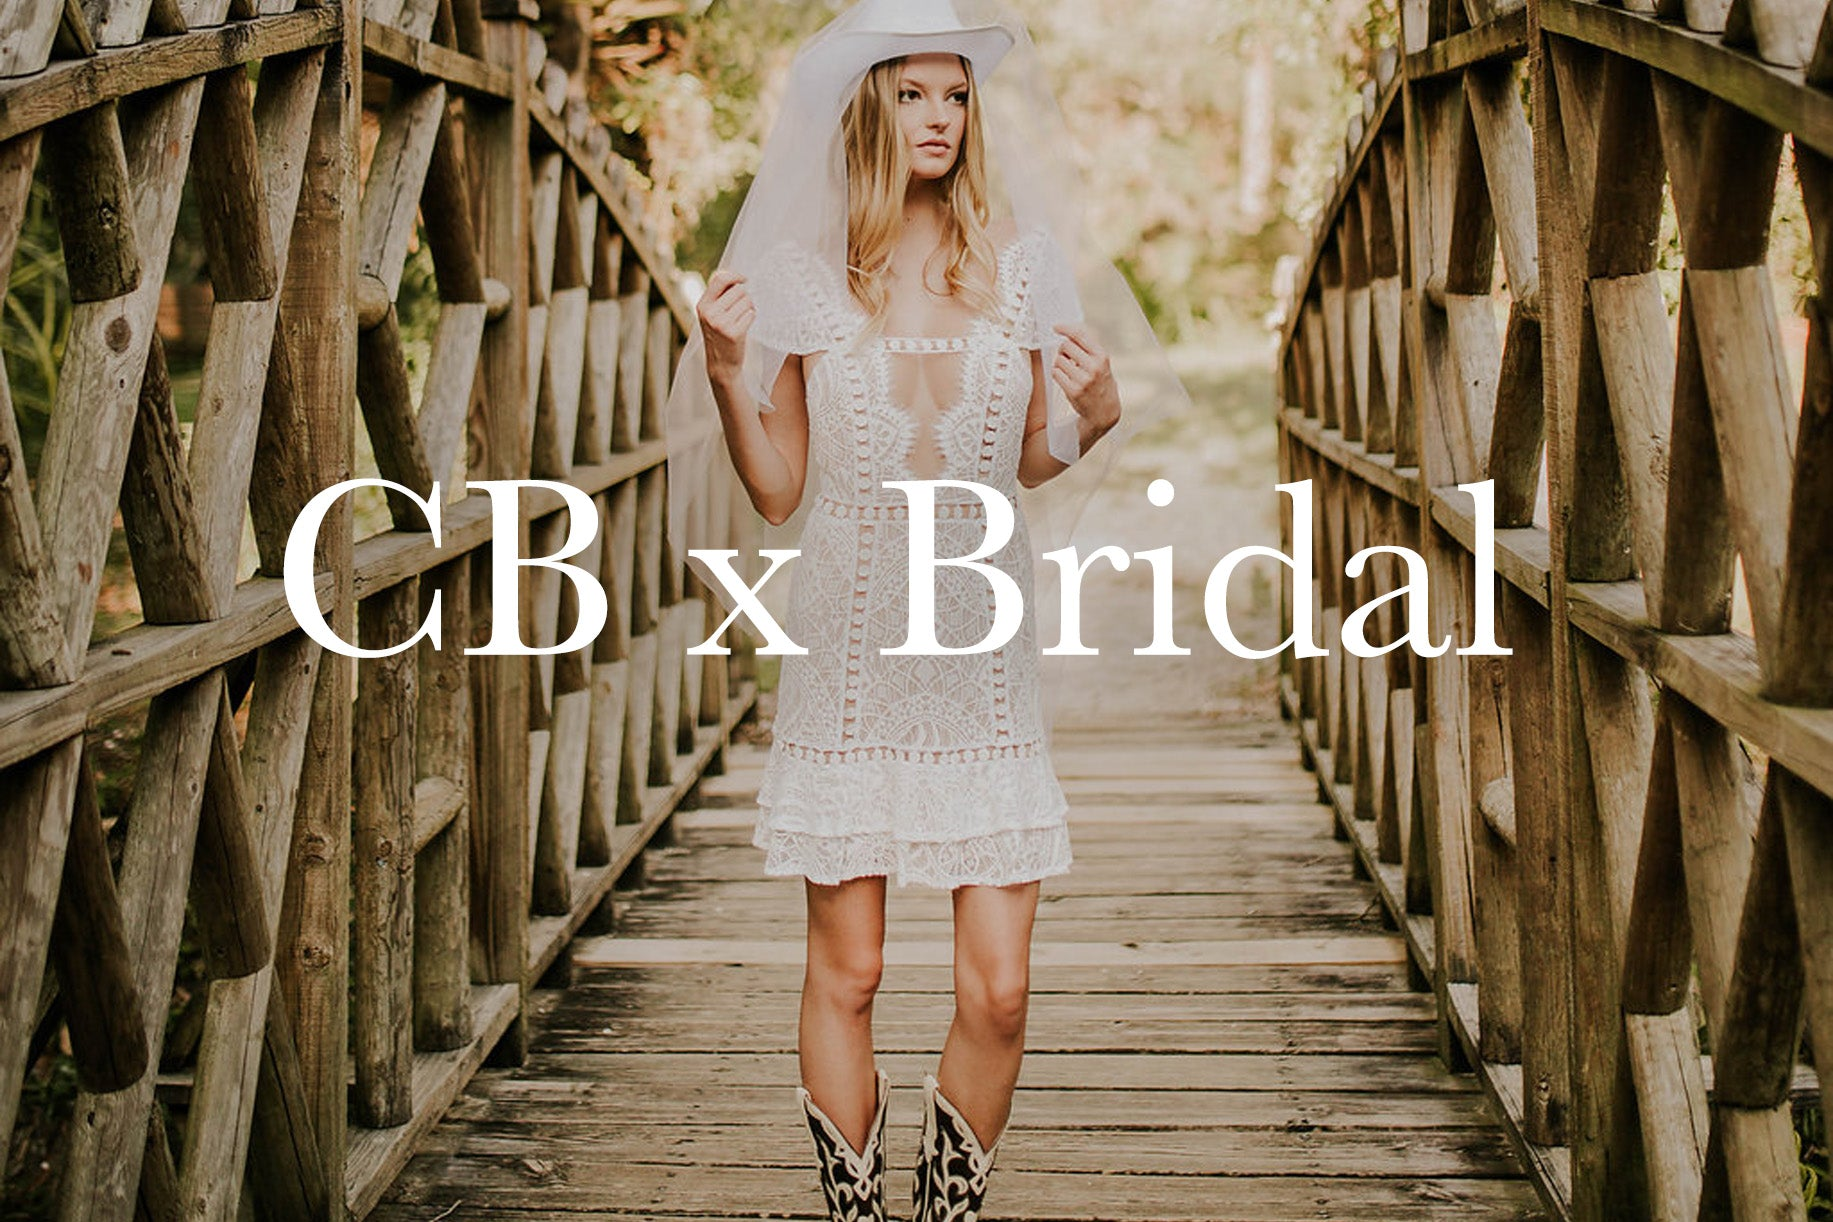 CB x Bridal Lookbook